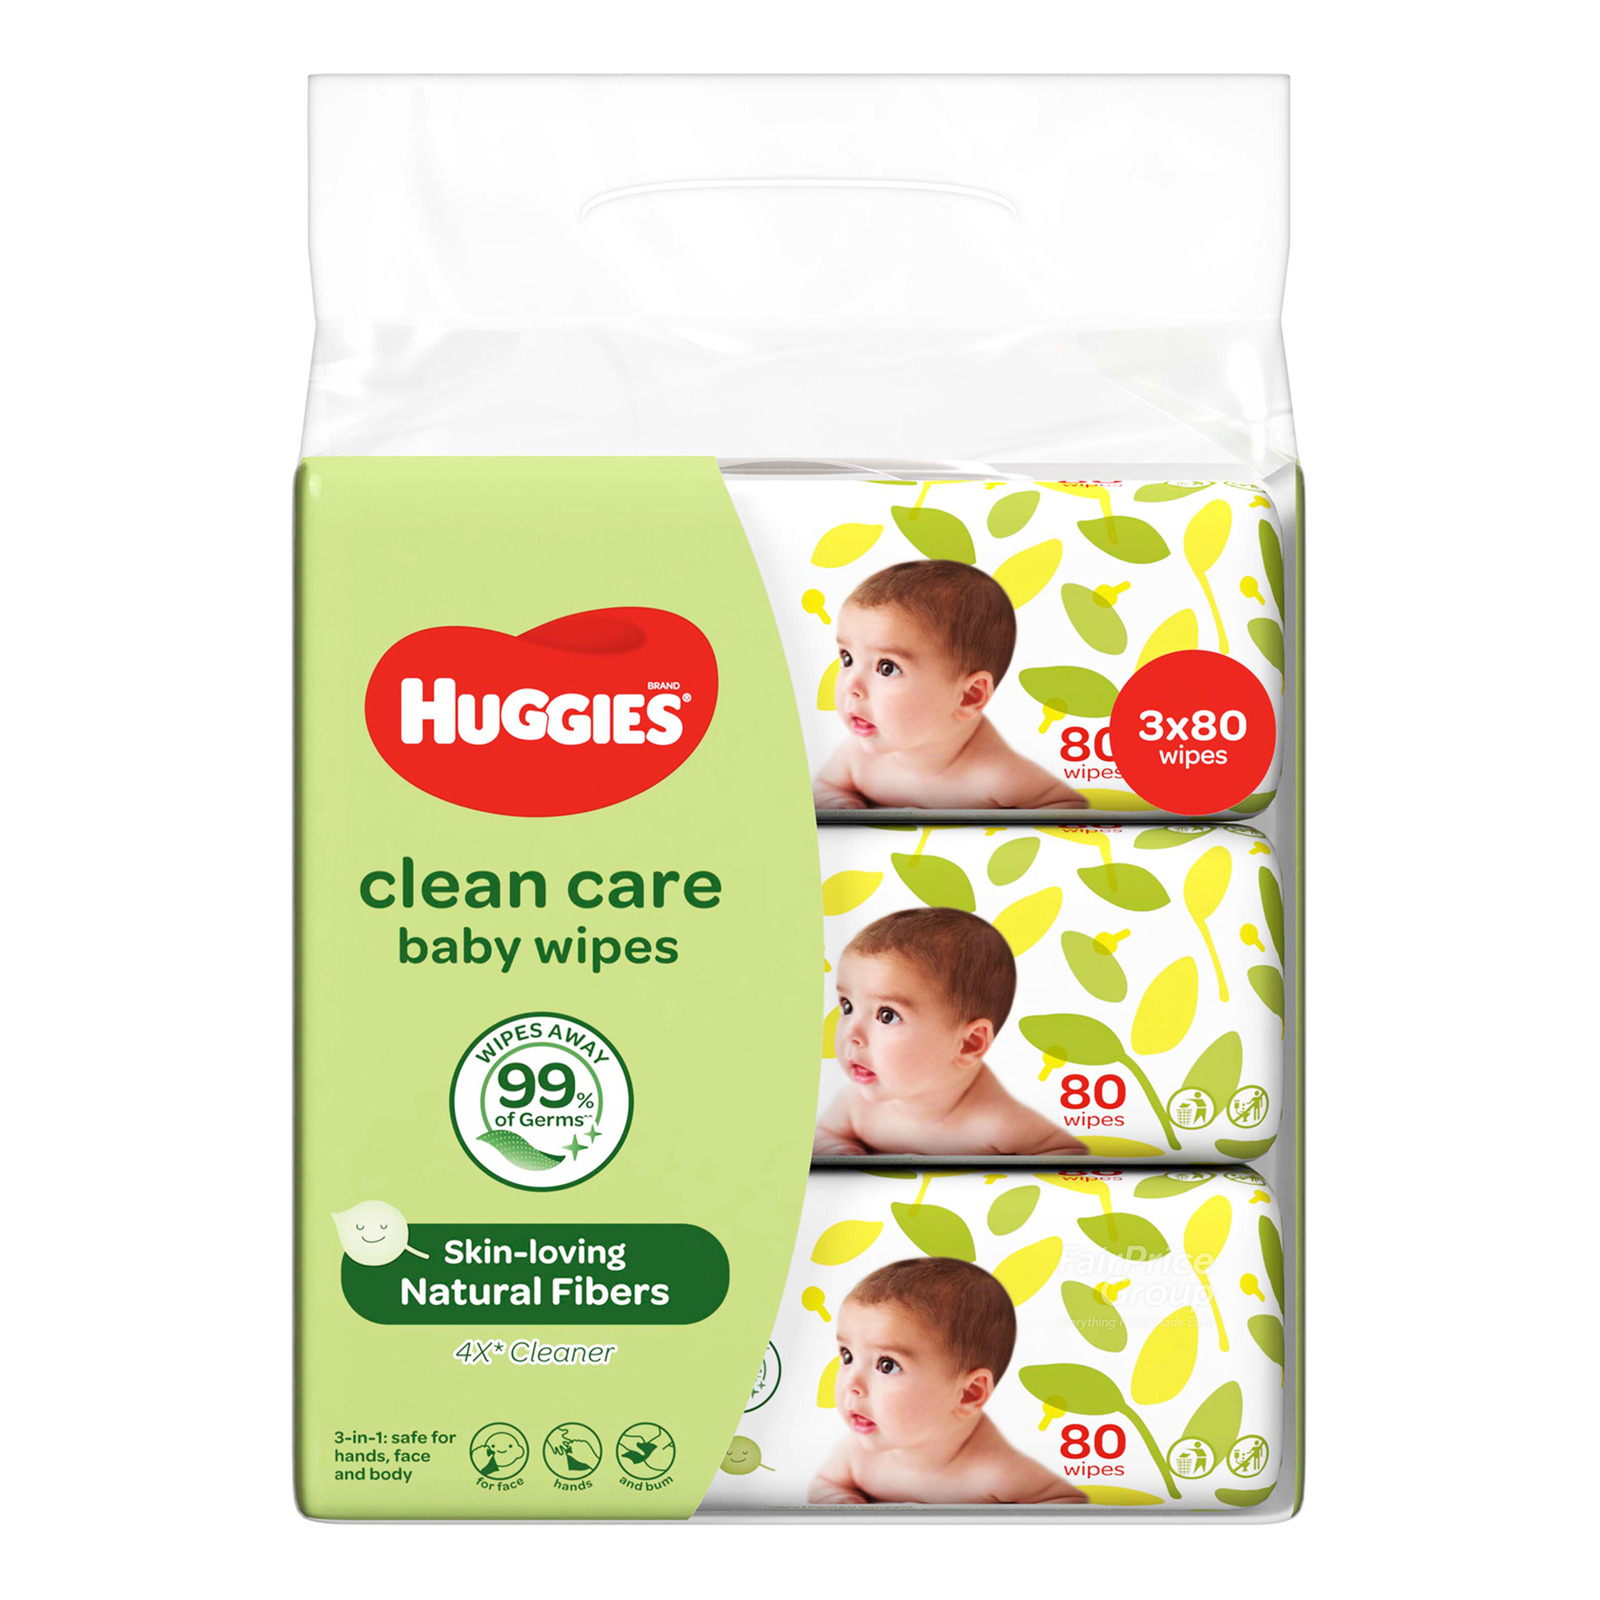 Huggies Baby Wipes - Clean Care